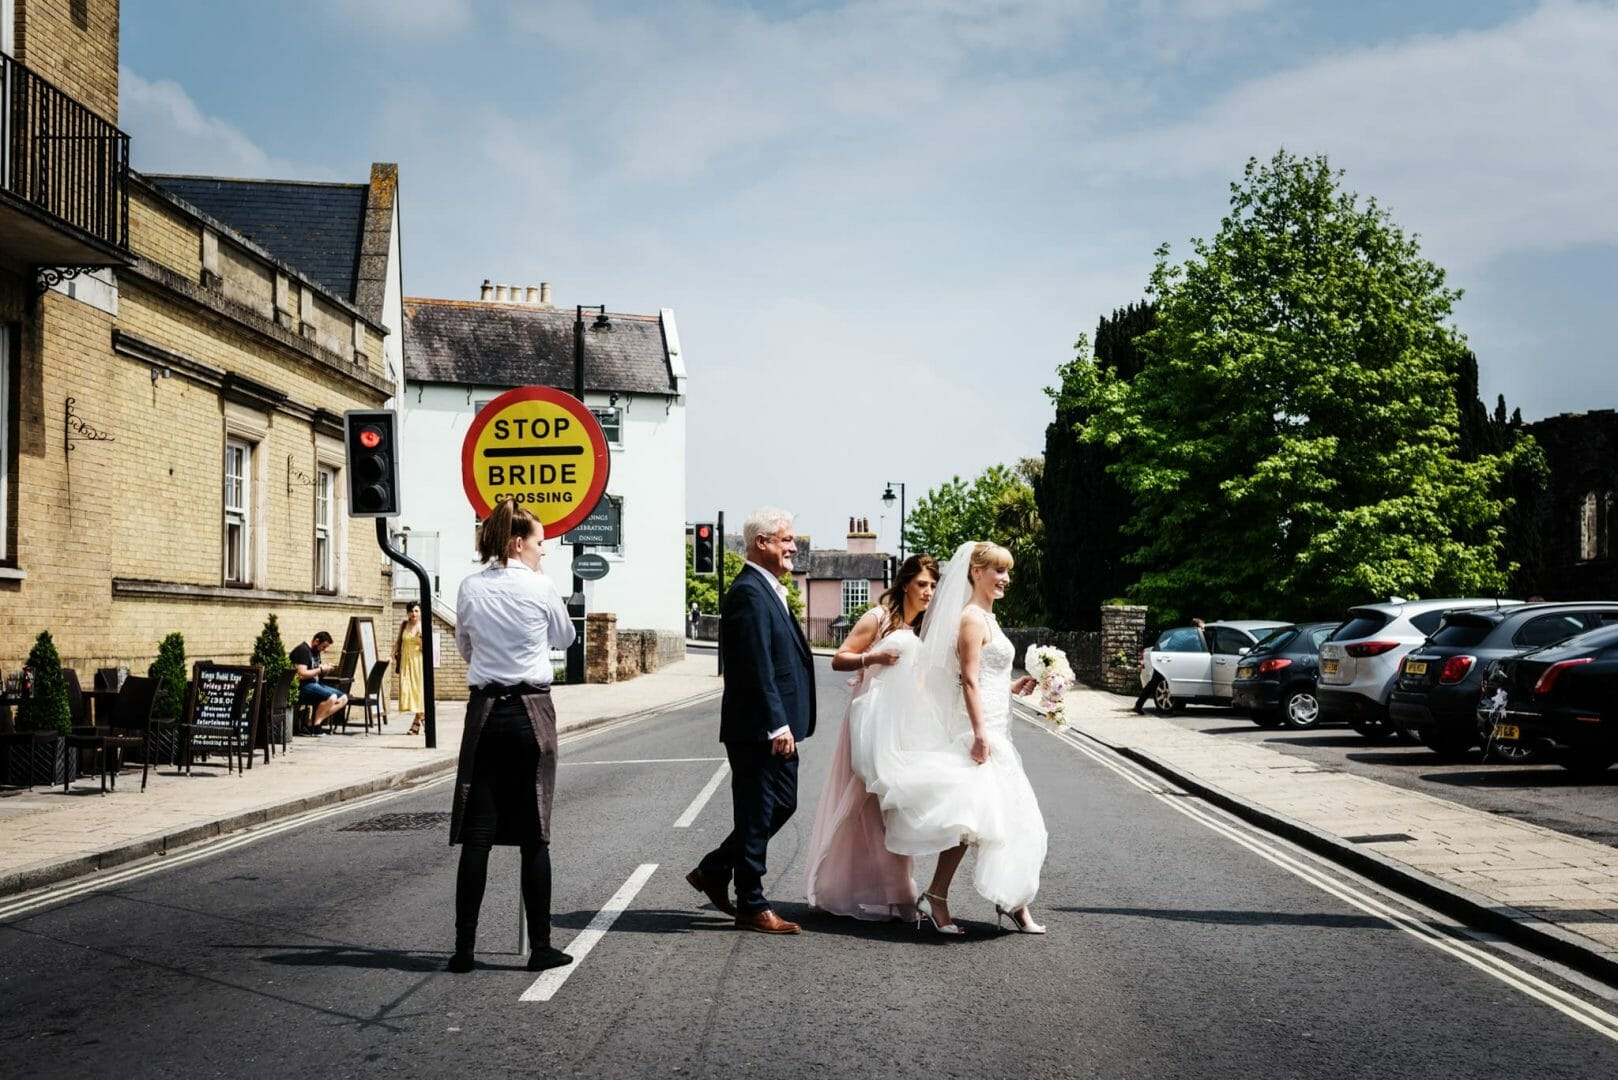 Bride Crossing - Kings Arms